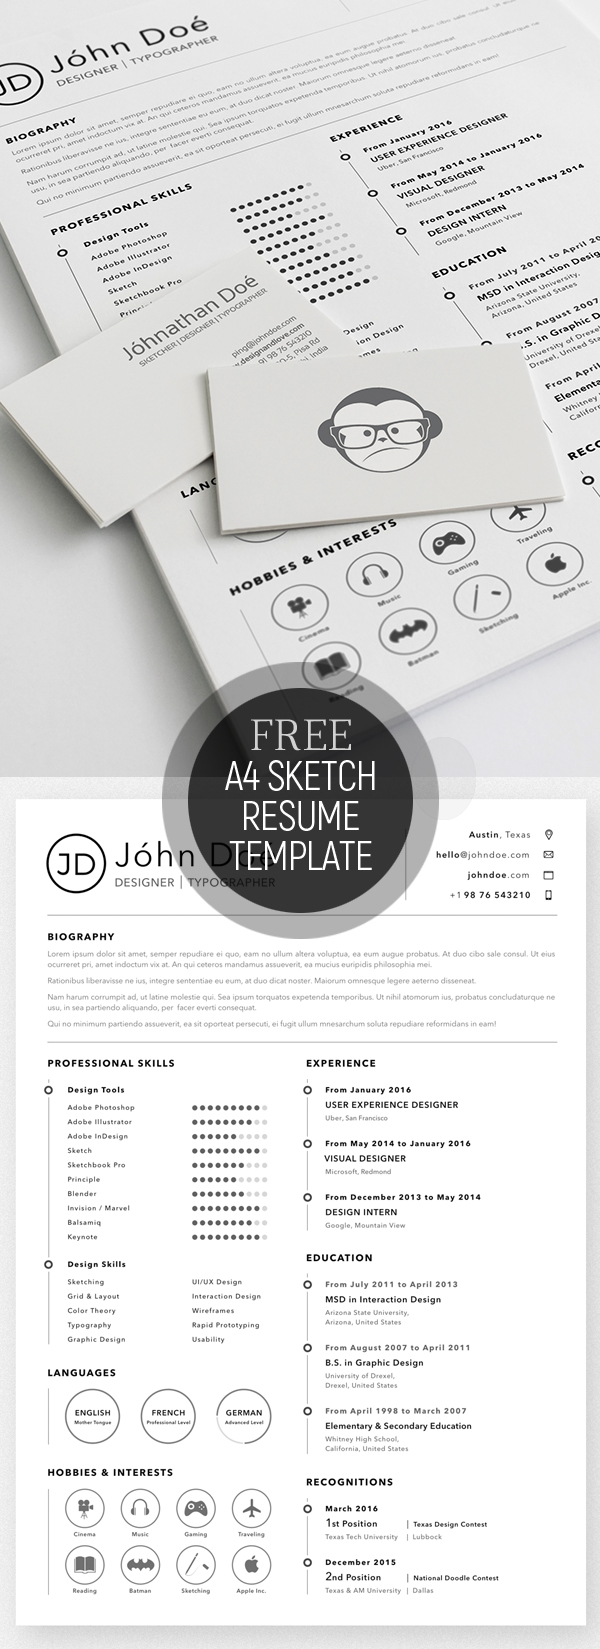 free a4 resume sketch template - Free Resumes Templates